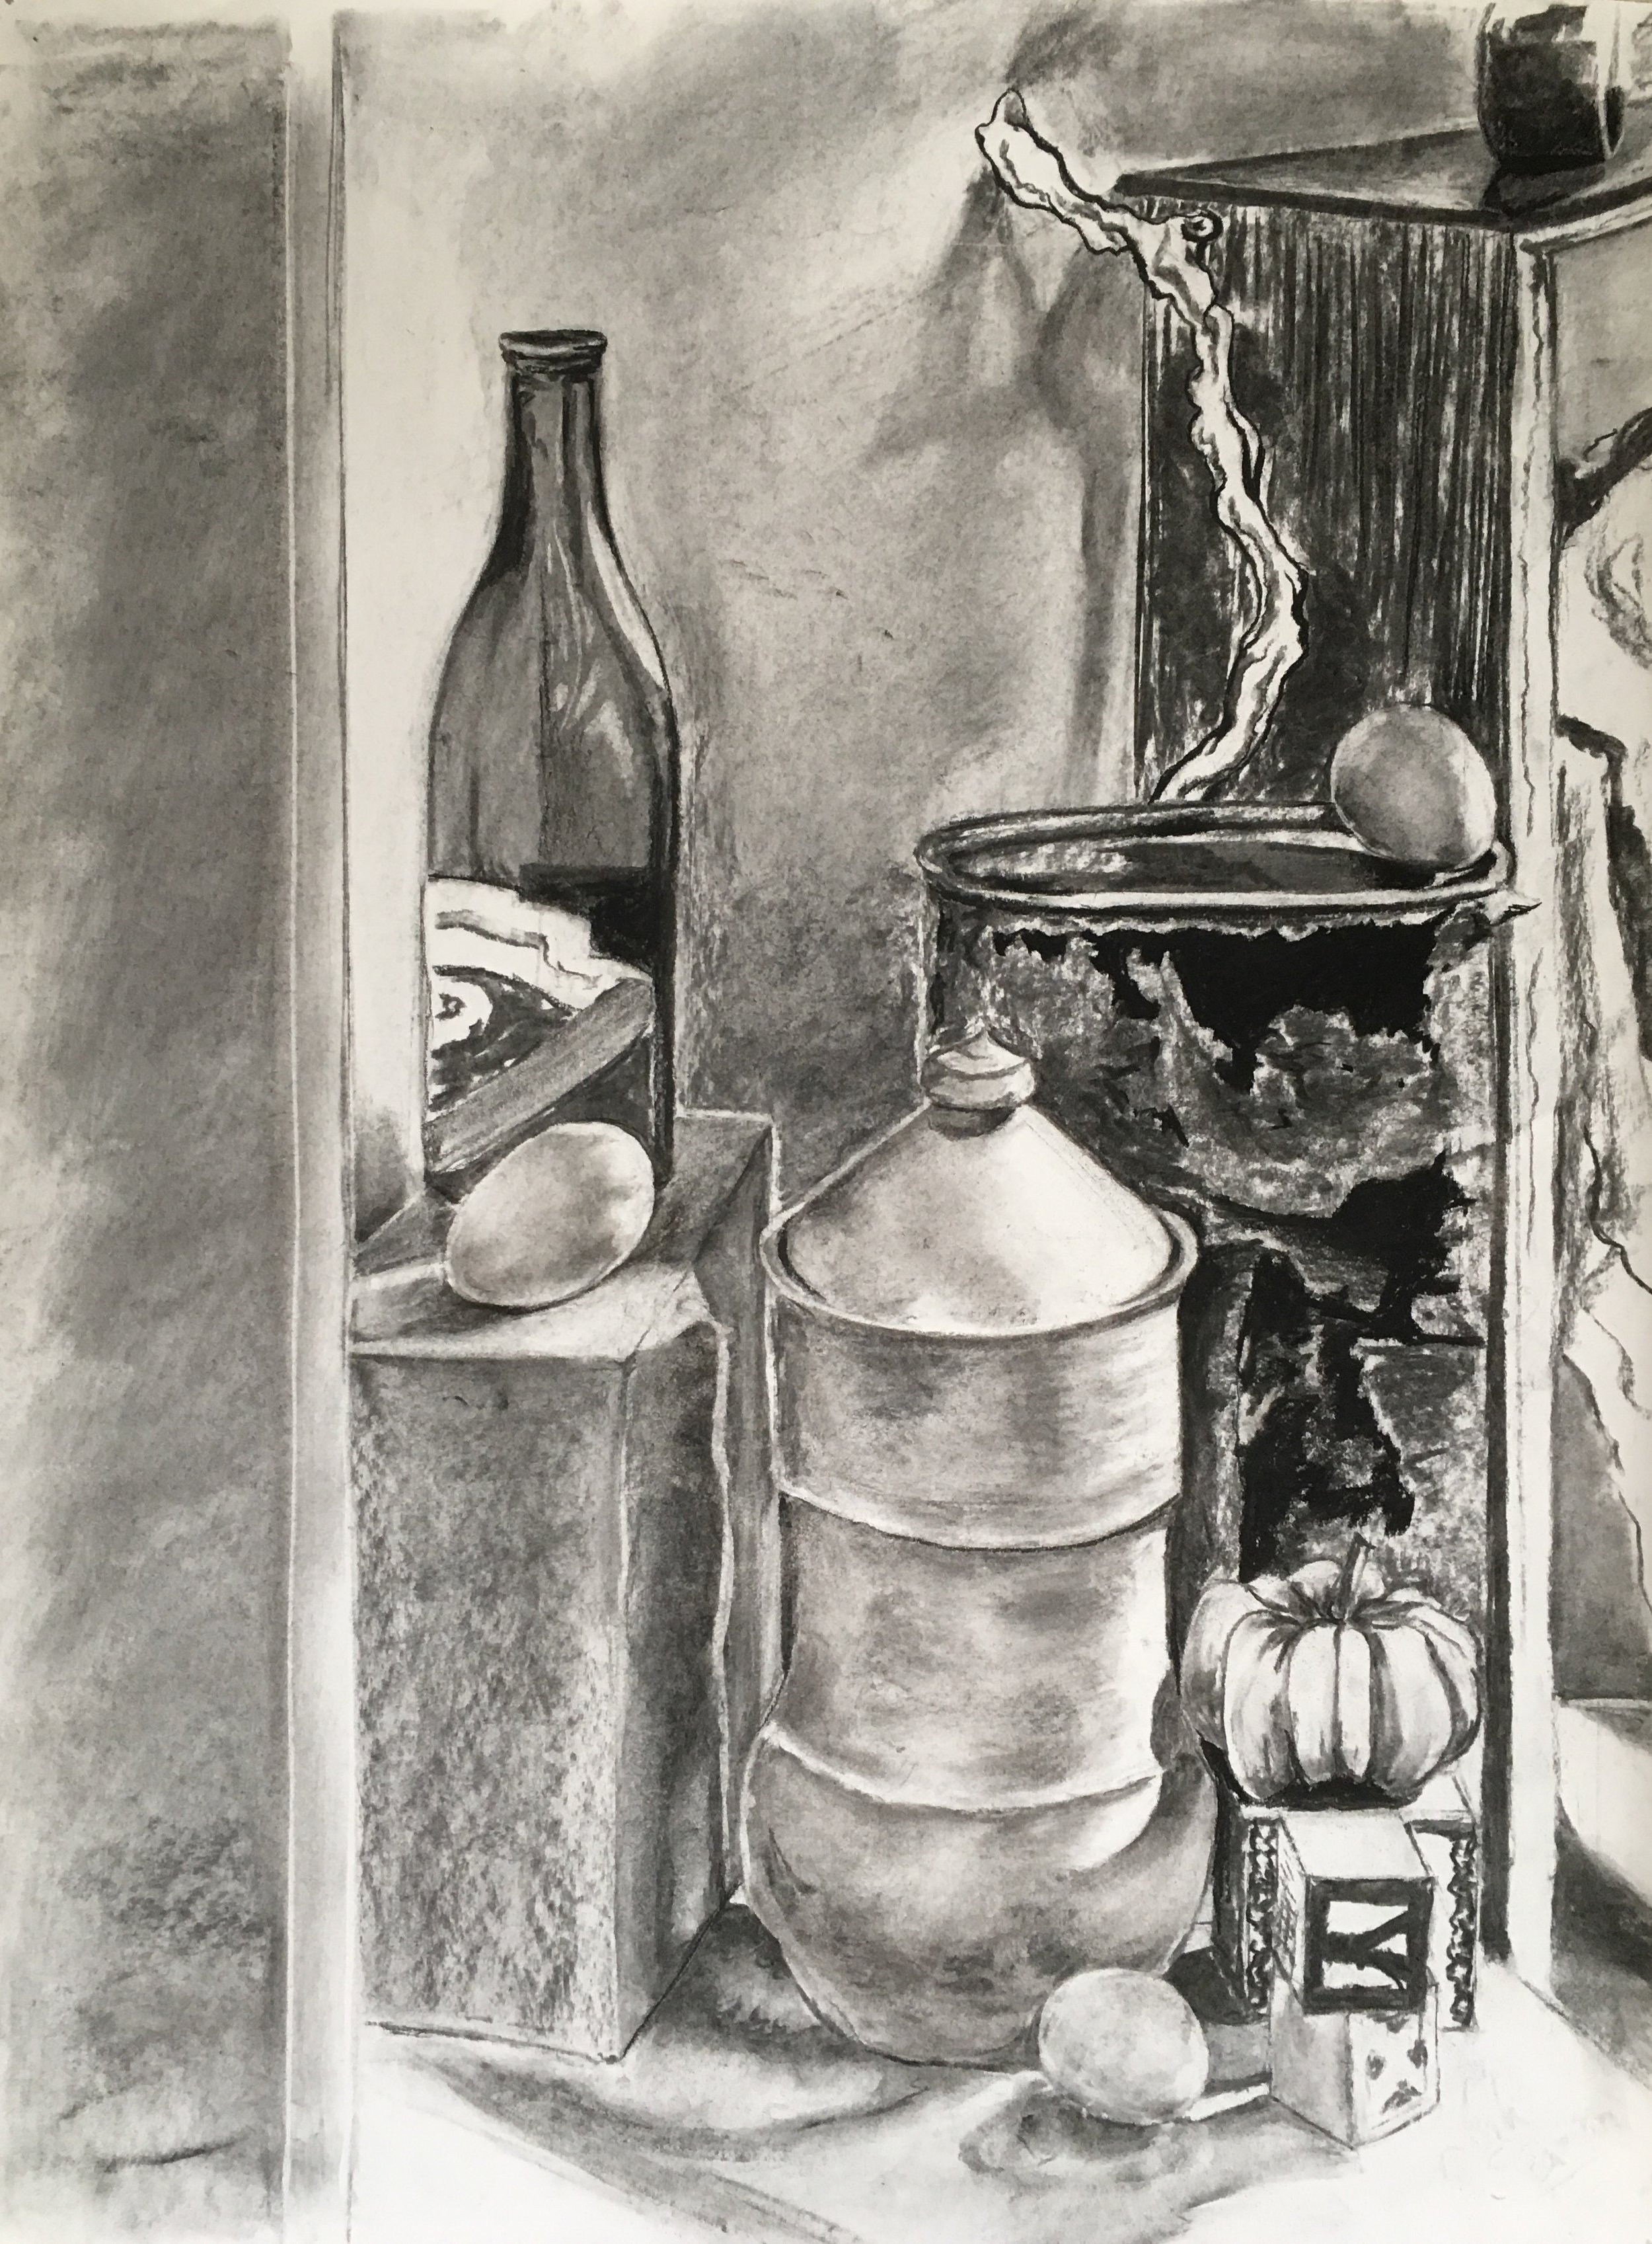 Student #1: Final Drawing